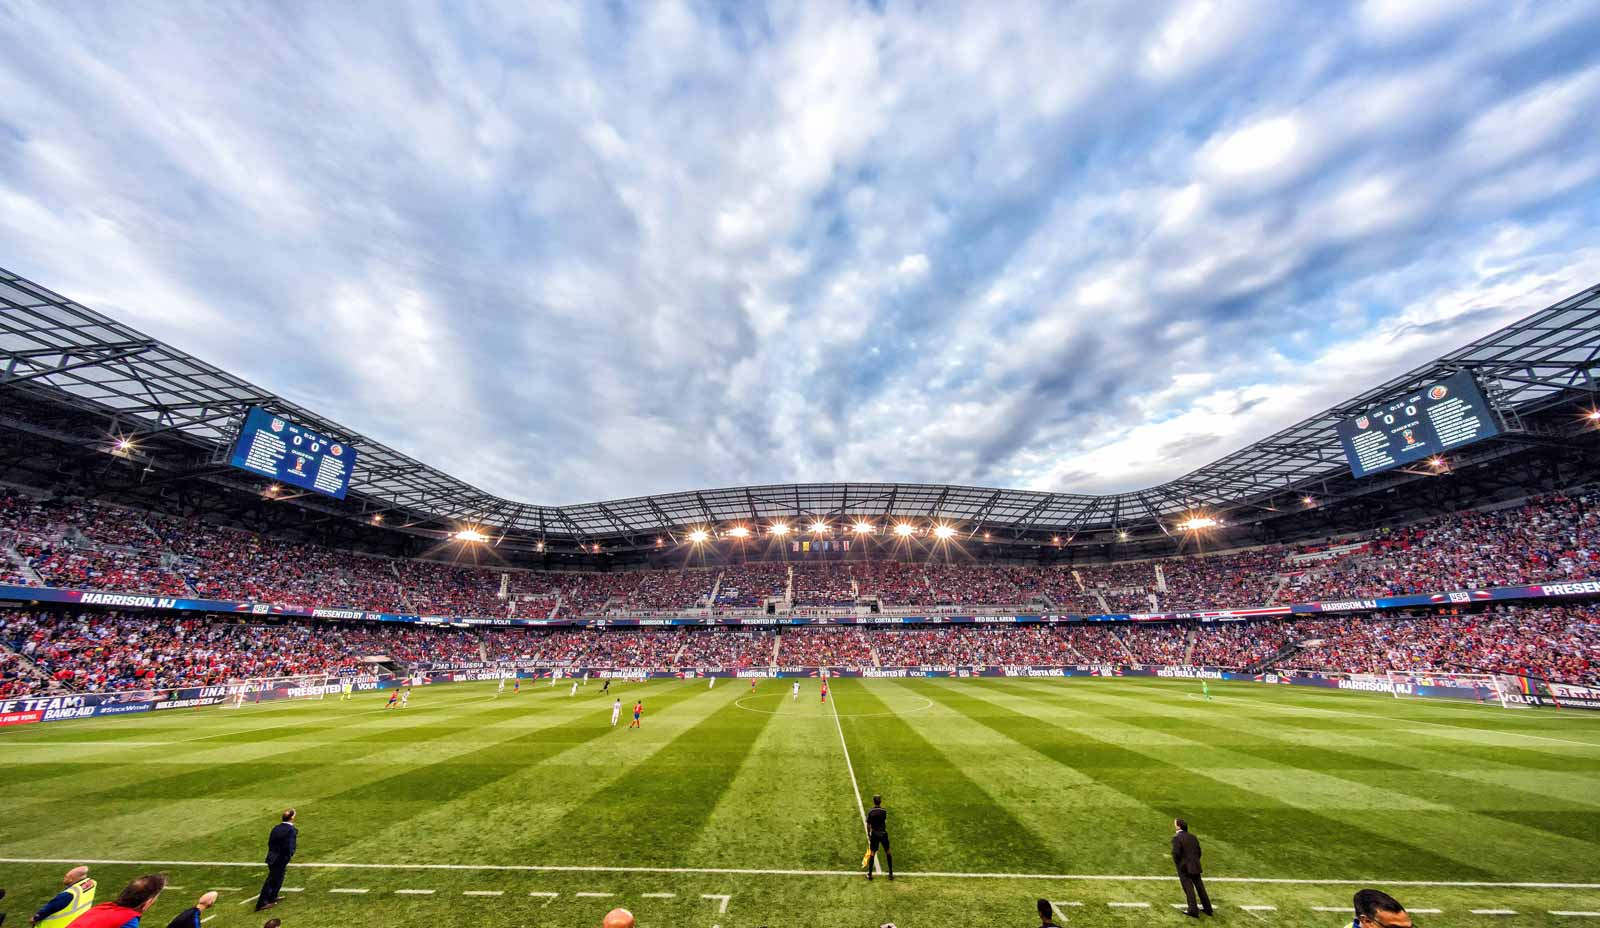 The 2018 FIFA World Cup qualifying match between the United States and Cost Rica, Red Bull Arena, Harrison, New Jersey, September 2017